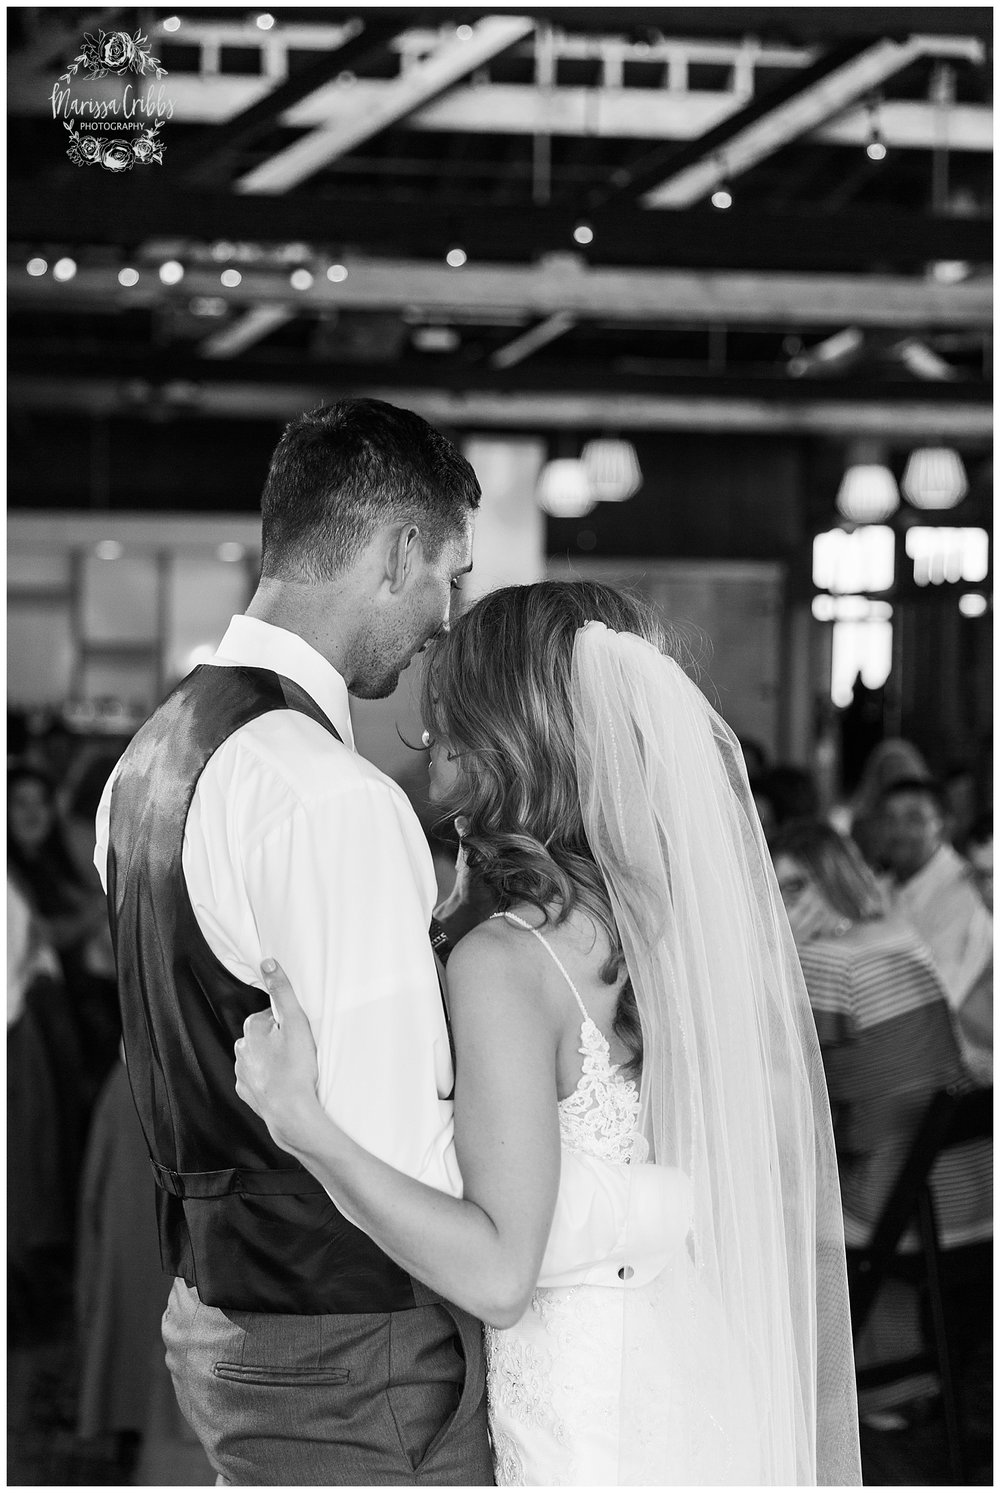 Maree & Corey | Berg Event Space Wedding | Kansas City Wedding Photos | KC Photographers | Marissa Cribbs Photography | KC Wedding Photographers_0952.jpg